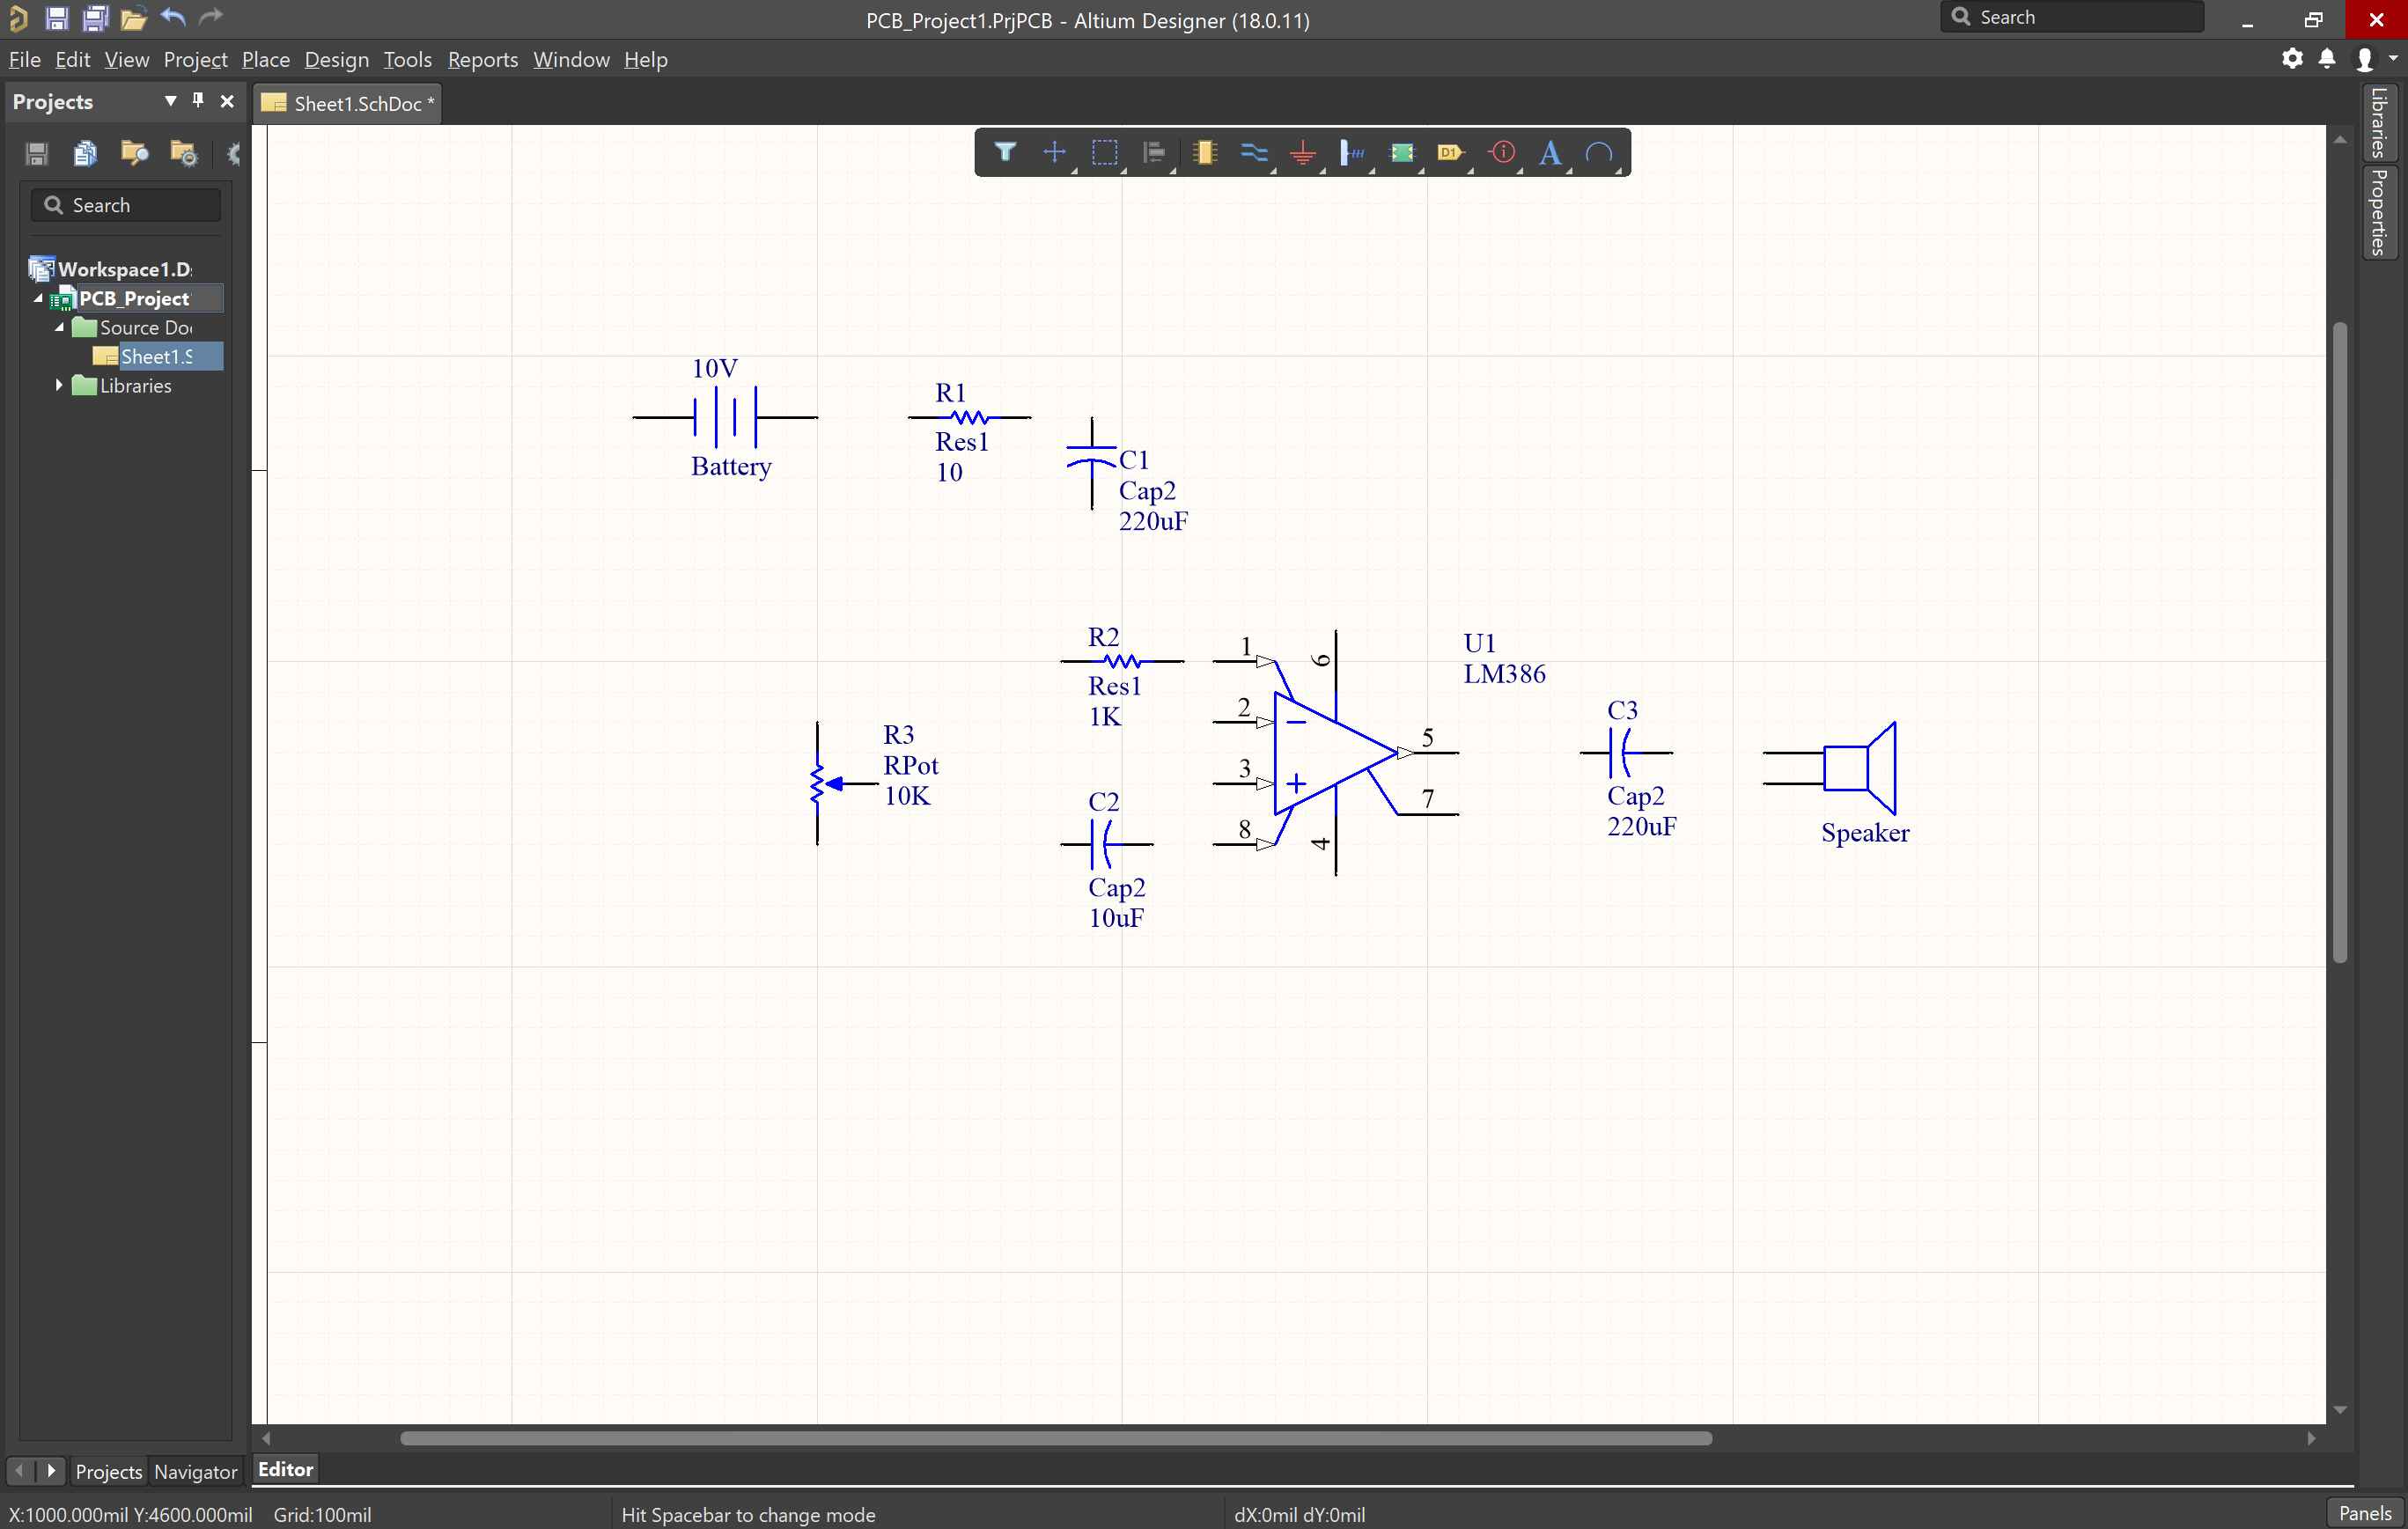 Picture of schematic with components in Altium Designer